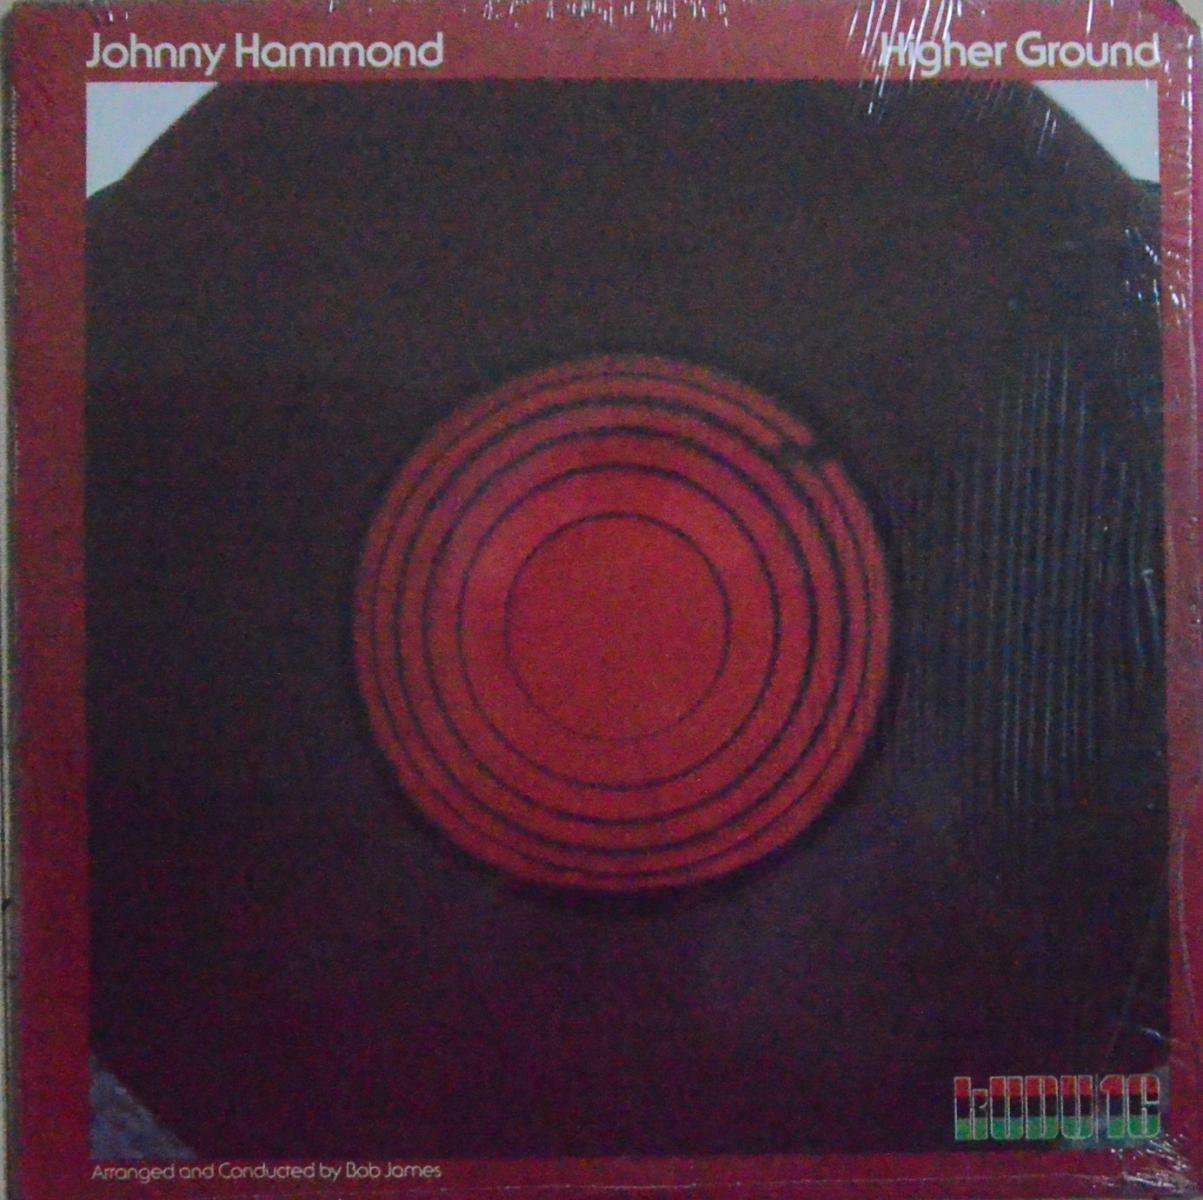 JOHNNY HAMMOND / HIGHER GROUND (LP)